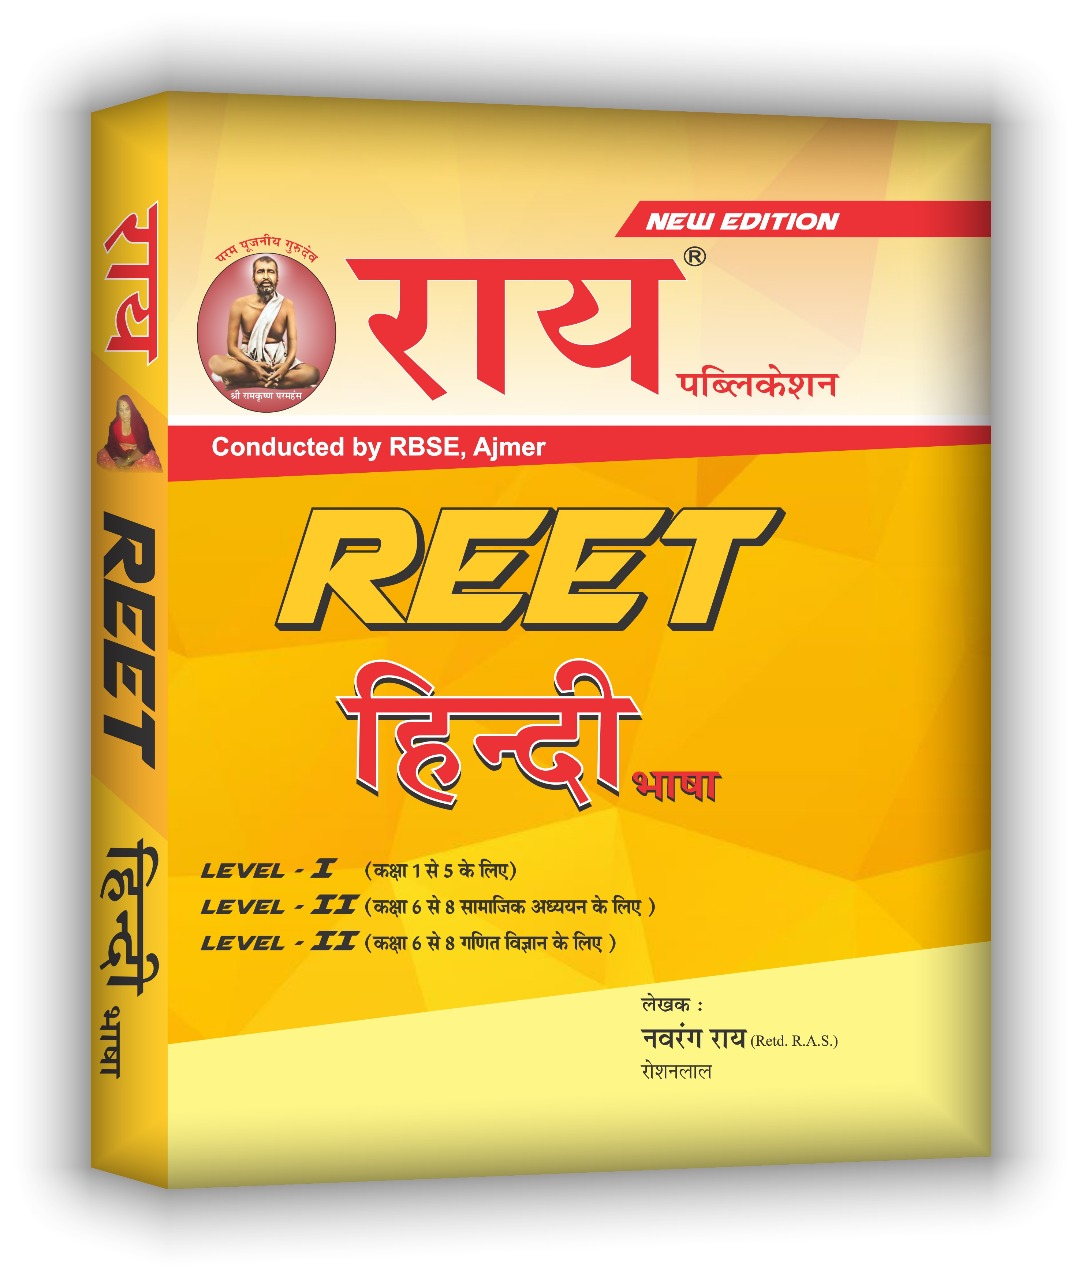 REET Hindi Language with Method for Level 1(1-5) and Level 2(6-8) ( REET Bhasha 1 avem Bhasha 2 Hindi ) (REET 2020 )